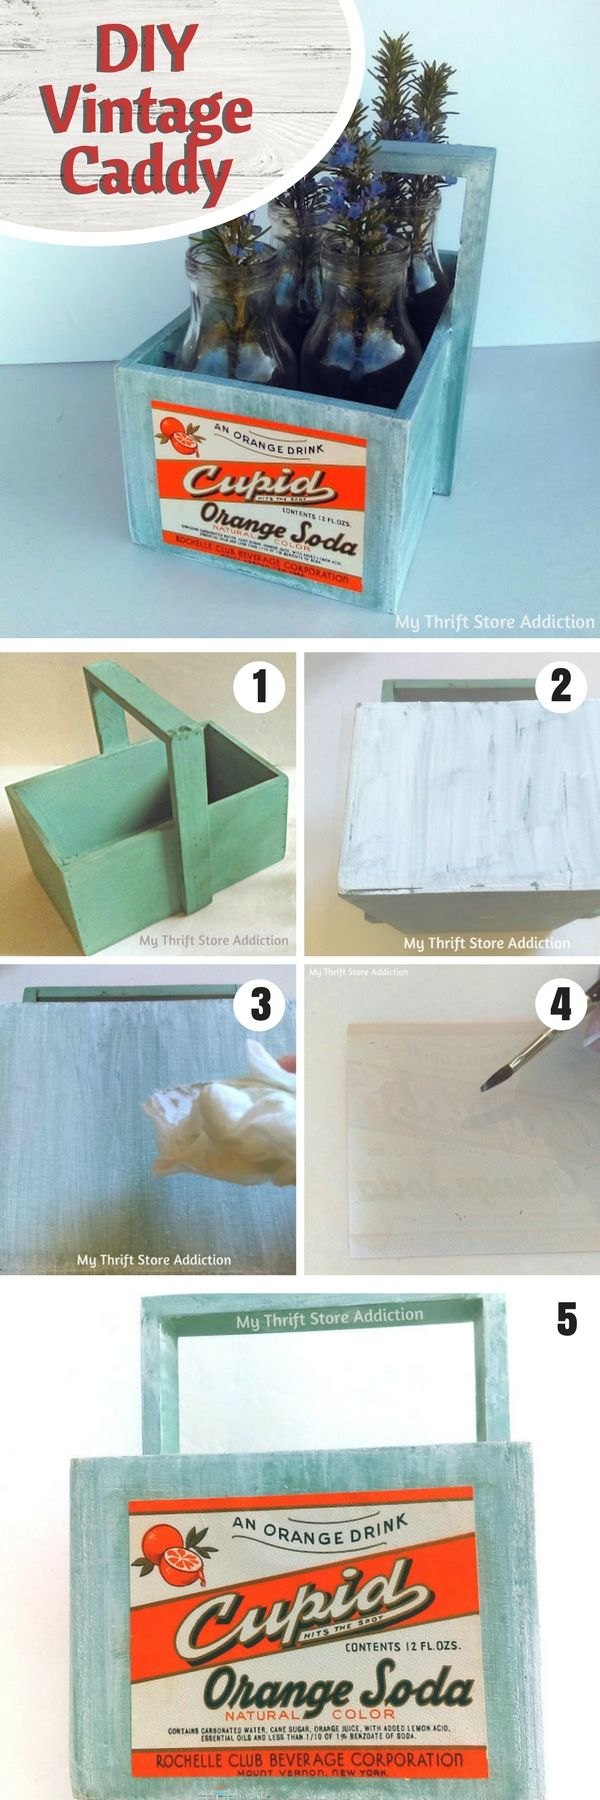 Check out how to make a vintage DIY caddy @istandarddesign